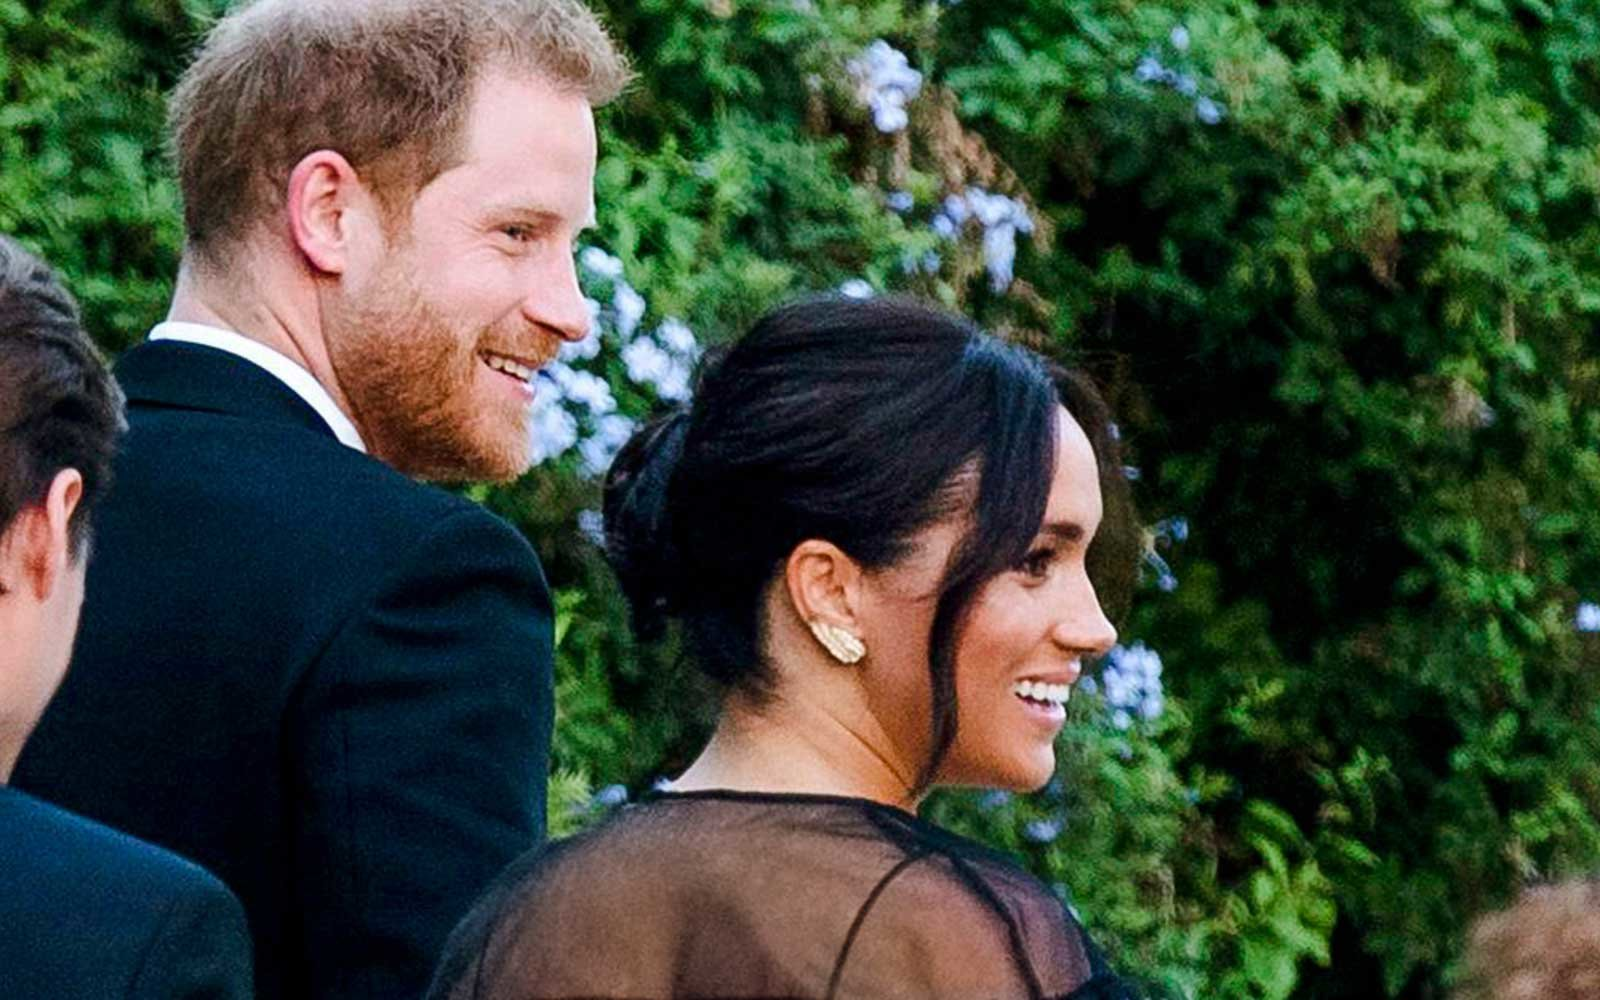 Britain's Prince Harry and his wife Meghan, Duchess of Sussex arrive to the wedding of Misha Nonoo and Michael Hess in Rome